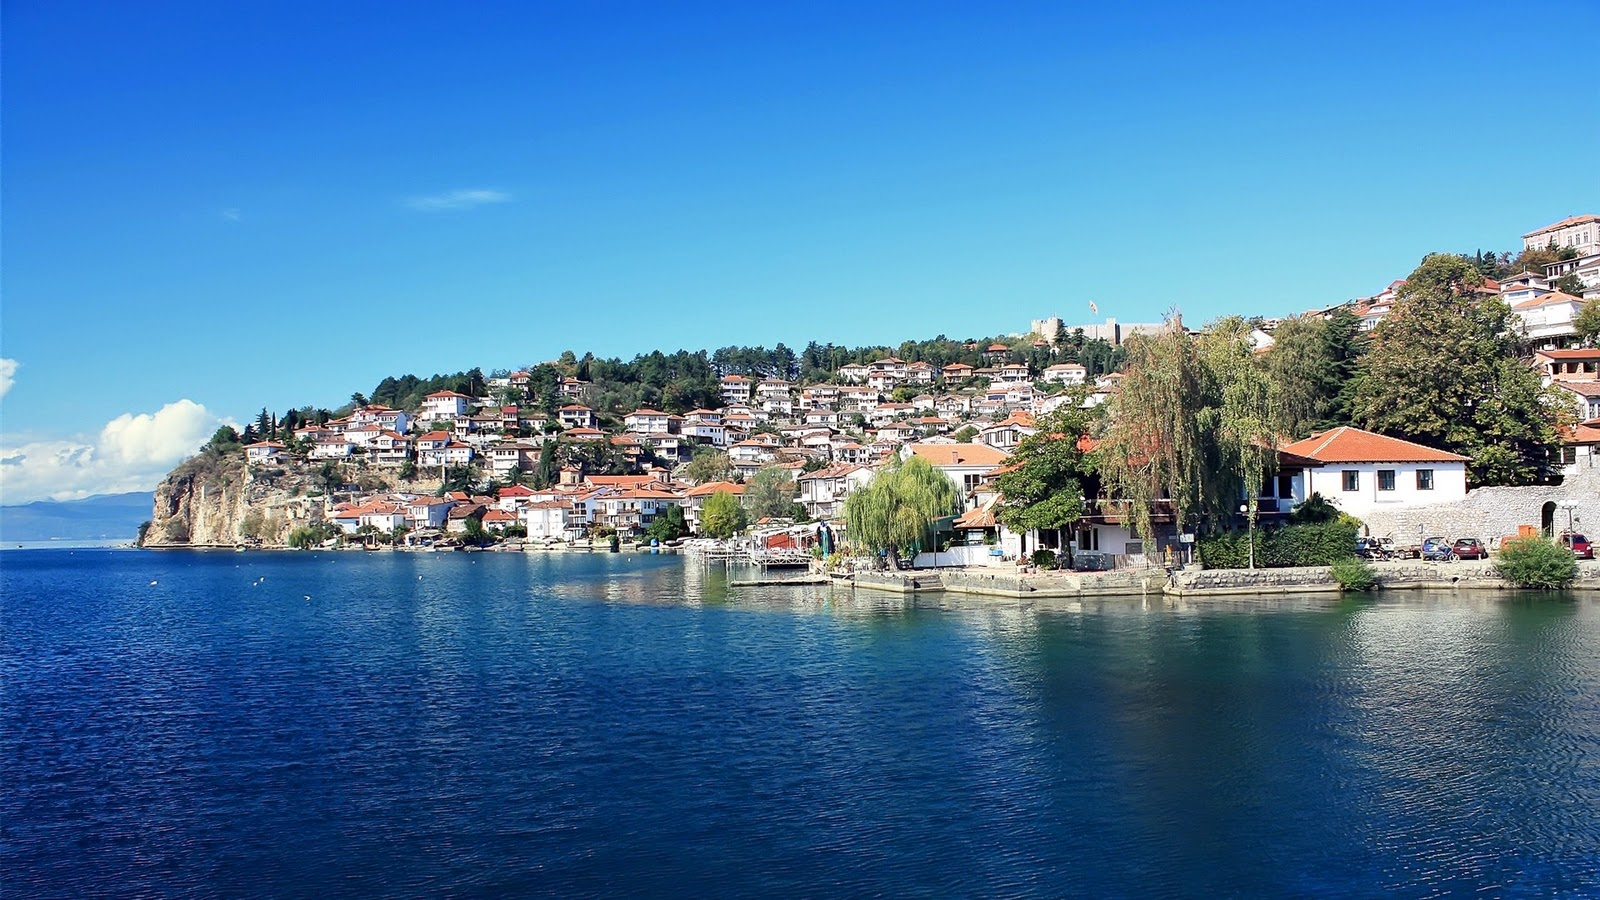 Ohrid Macedonia Balkans eastern europe beaches landscape